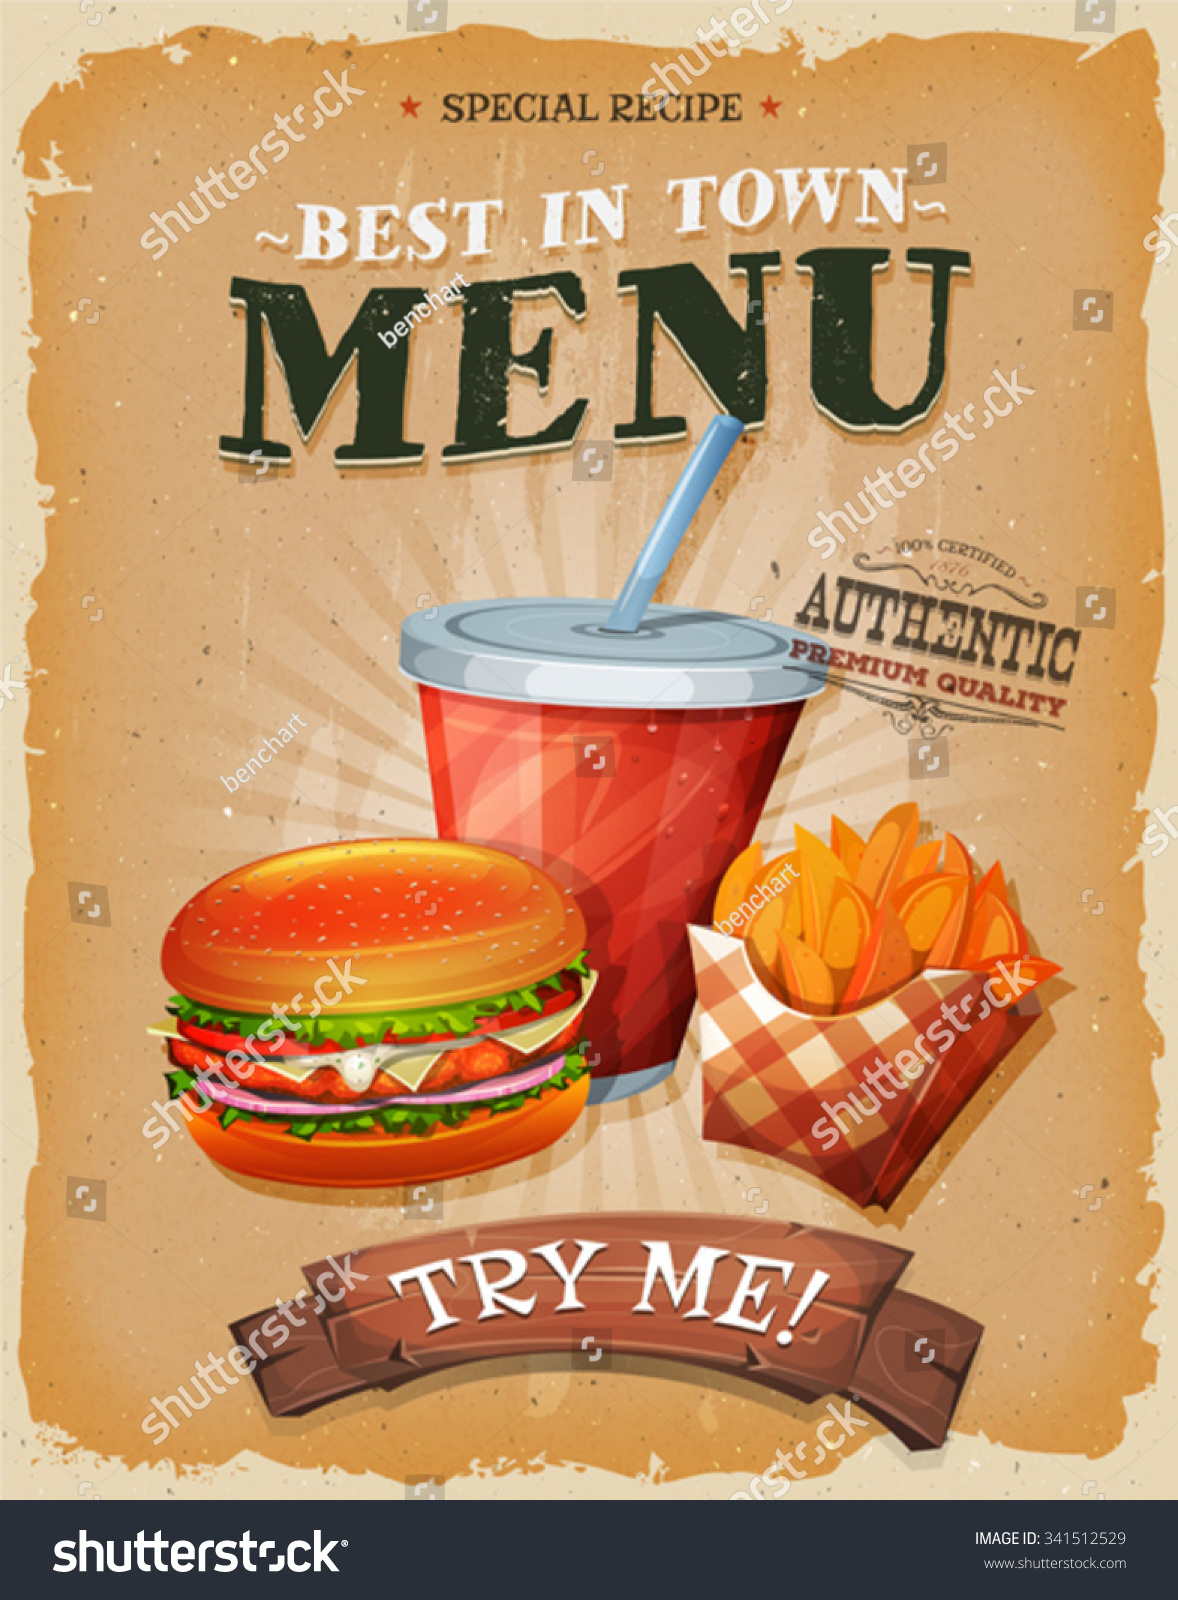 Grunge And Vintage Fast Food Menu PosterIllustration of a design vintage and grunge textured poster with burger cup of soda to drink and french fries icon for fast food snack and takeaway menu